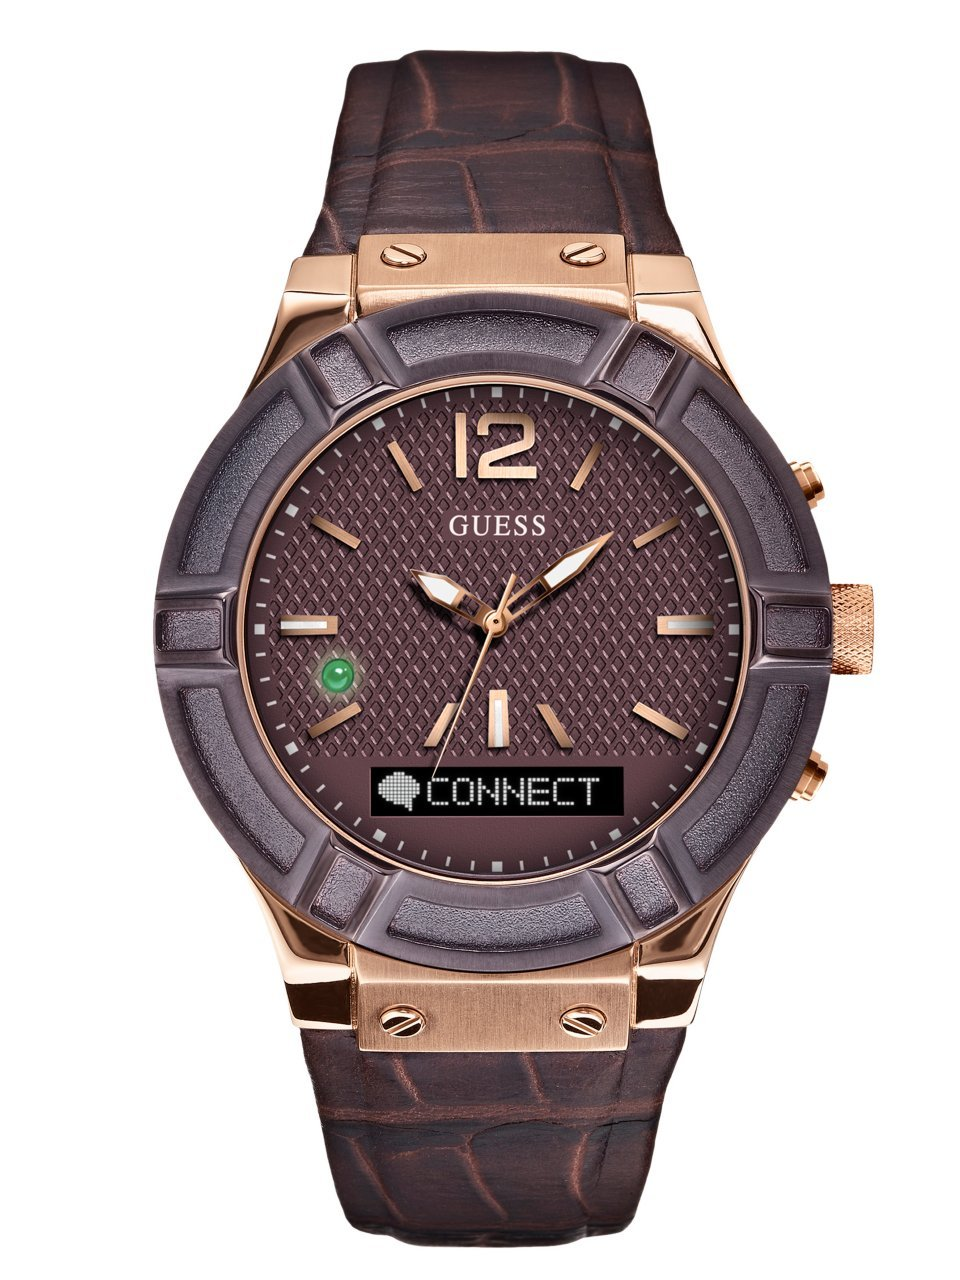 GUESS Men's CONNECT Smartwatch with Amazon Alexa and Genuine Leather Strap Buckle - iOS and Android Compatible -  Rose Gold by GUESS